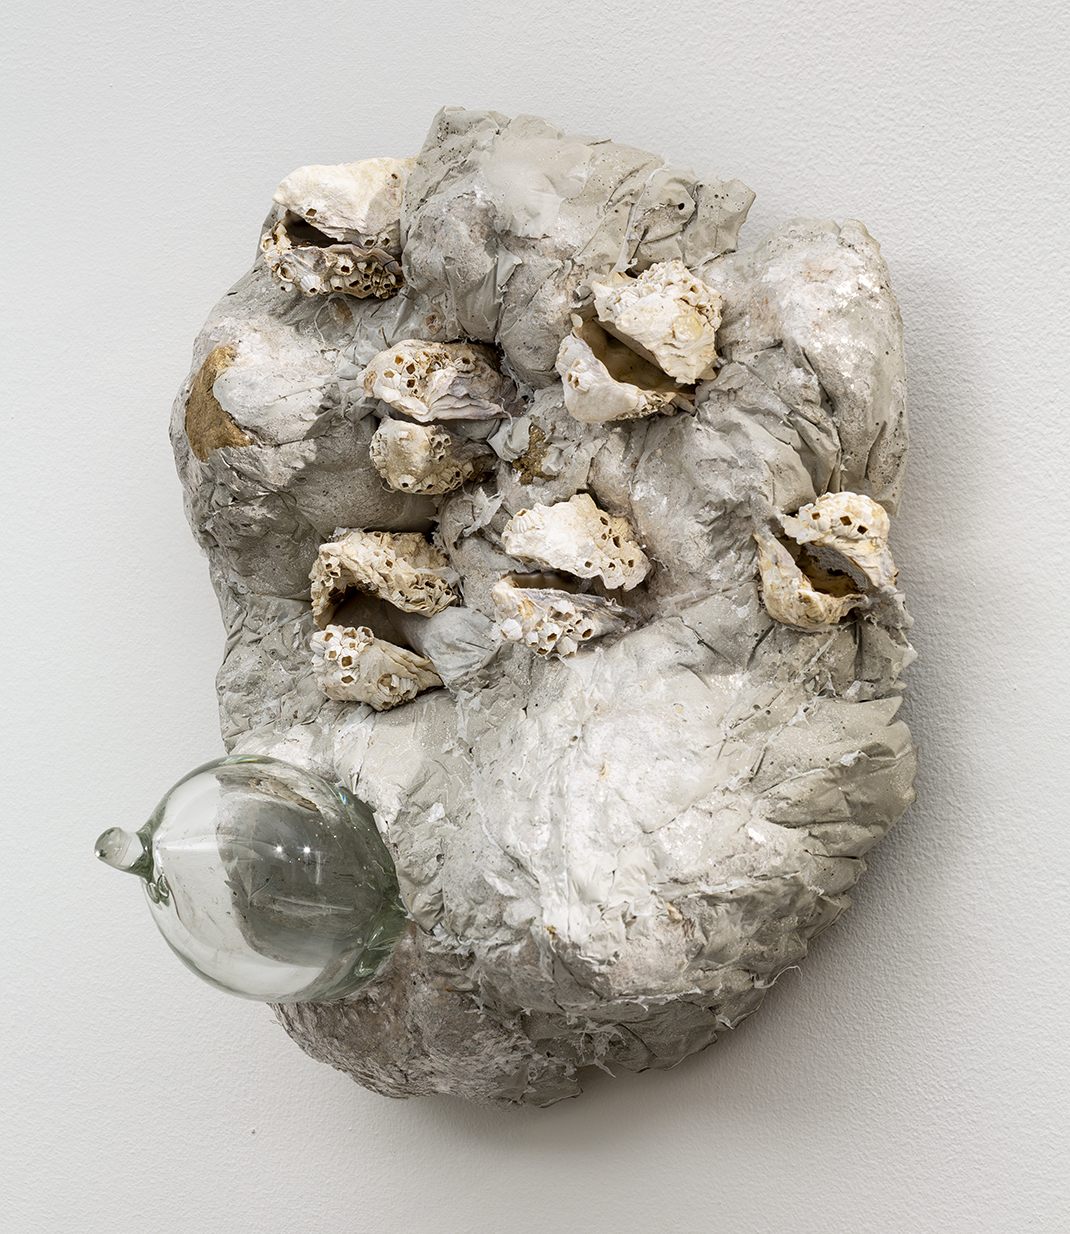 Alta Buden,  Umbos , 2019, Rockite, oyster shells, mica, hand blown glass, 13 x11 x 6 inches